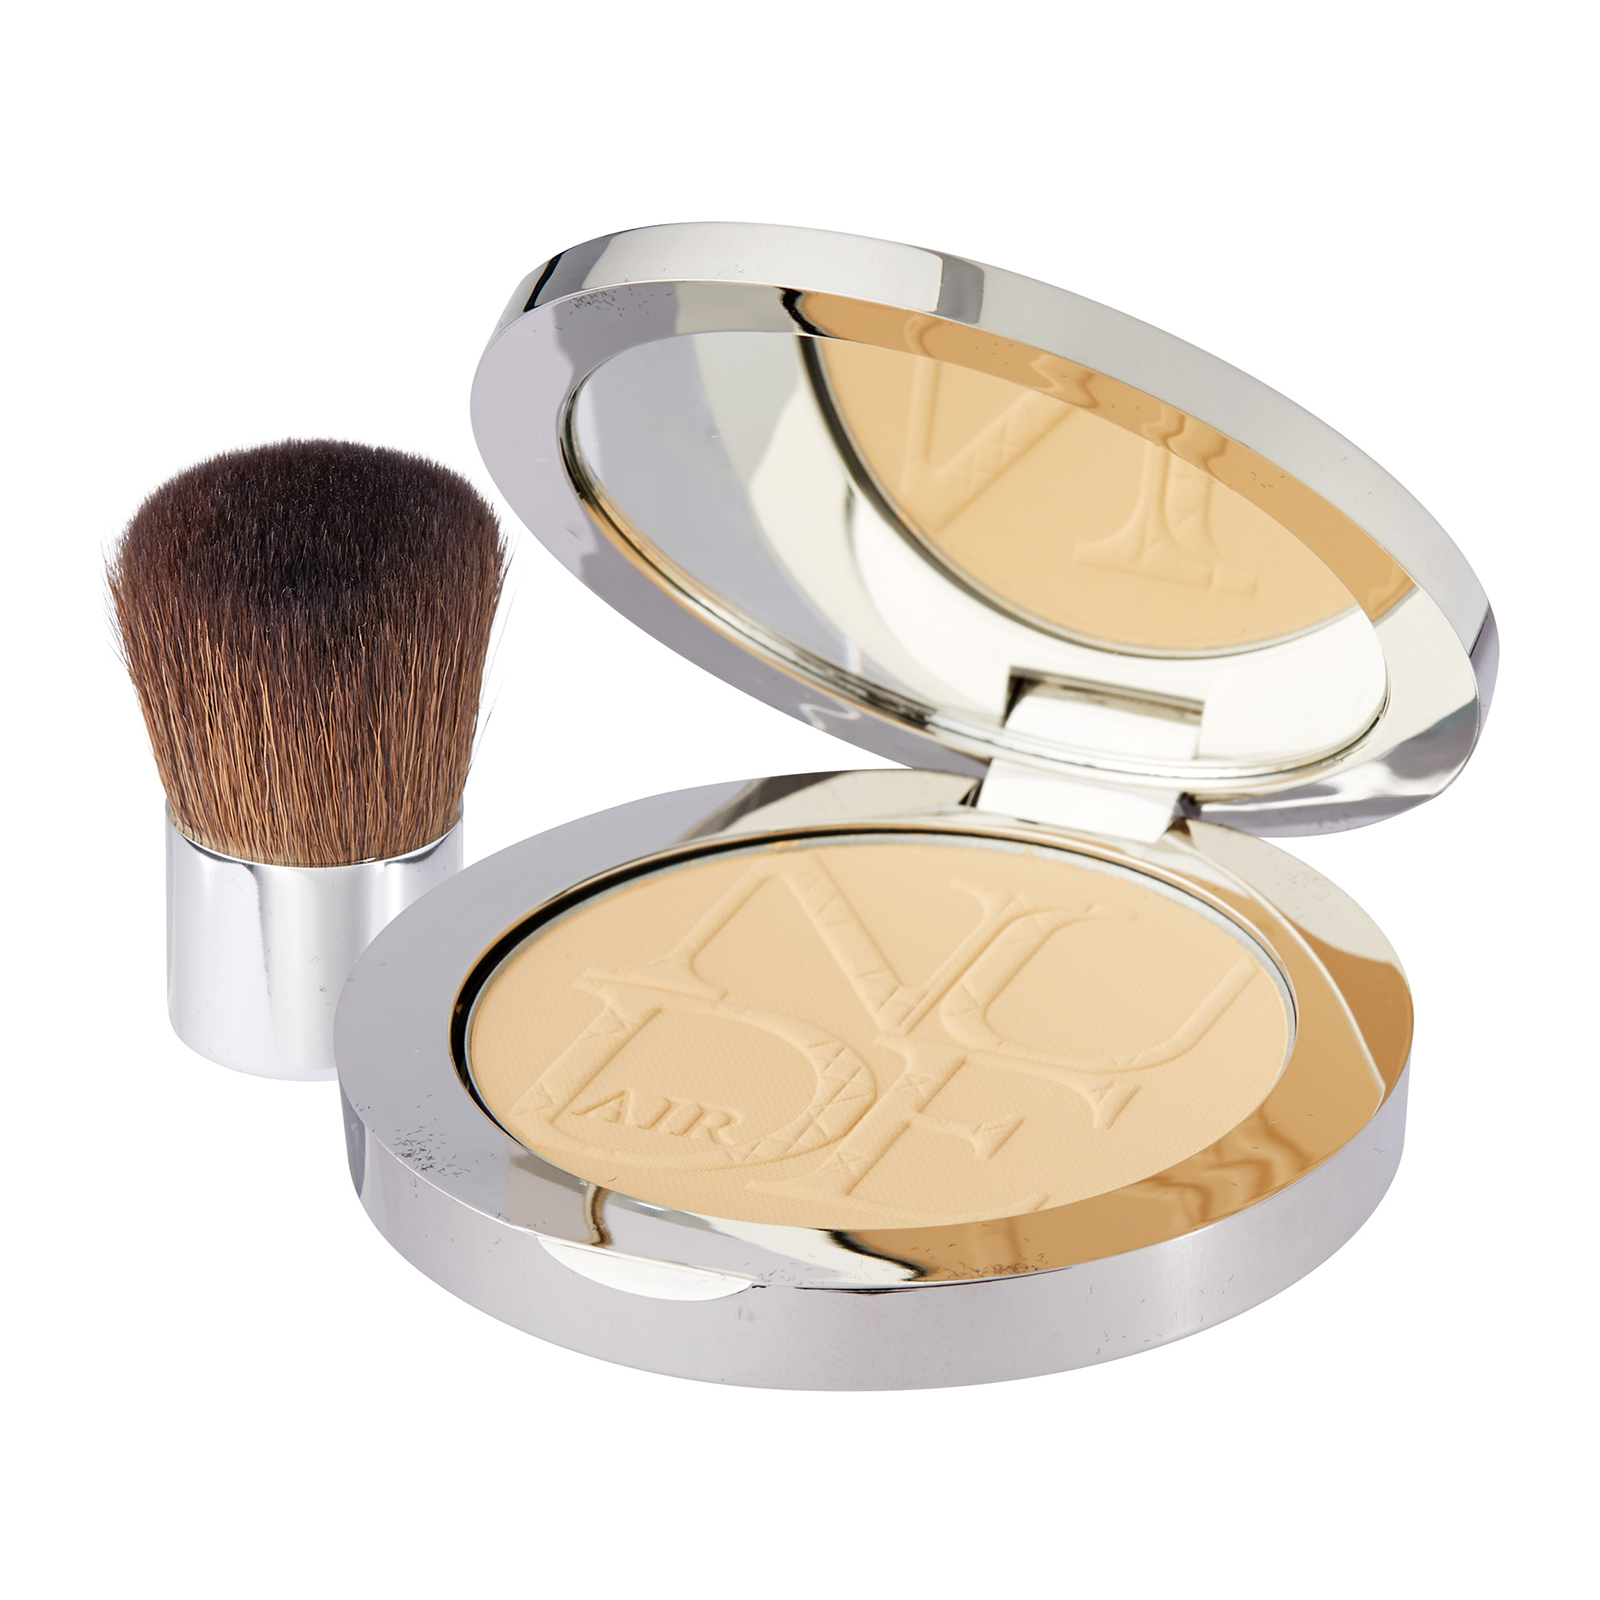 Christian Dior DiorSkin Nude Air  Healthy Glow Invisible Powder With Kabuki Brush 021 Linen, 0.35oz, 10g